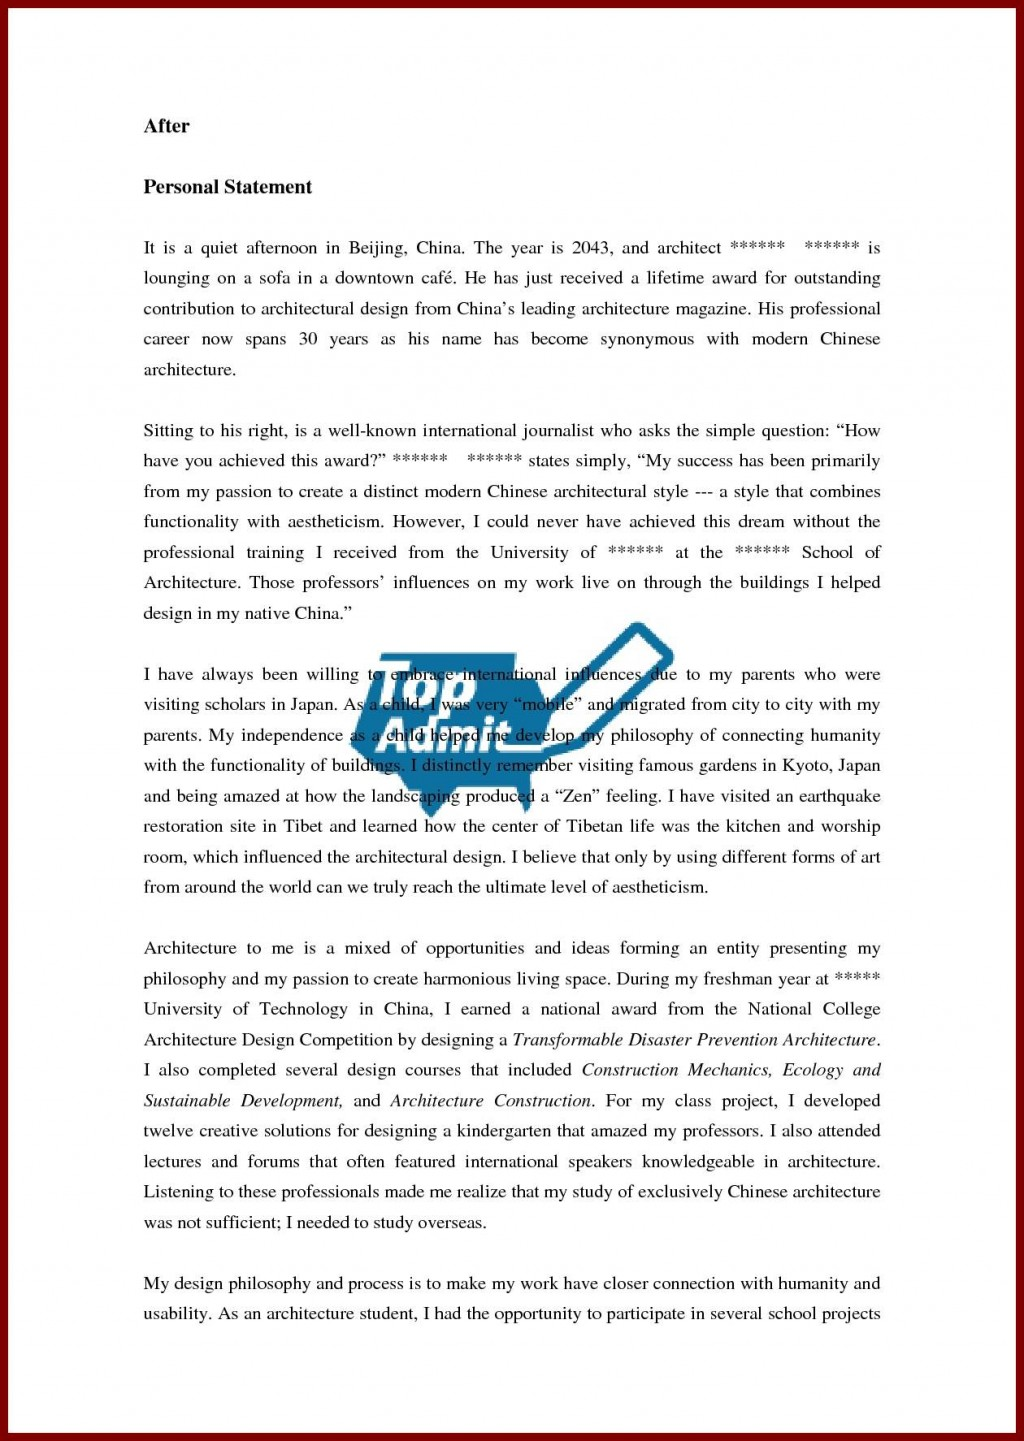 006 Pharmacy Schoolay Examples Usc Supplemental Application Help Entrance Sample Letter For Nursing Admission Zwjgmmd Personal Statement Image Interview Prompts Tips Questions Prompt Sensational Essay Engineering 2017 Large